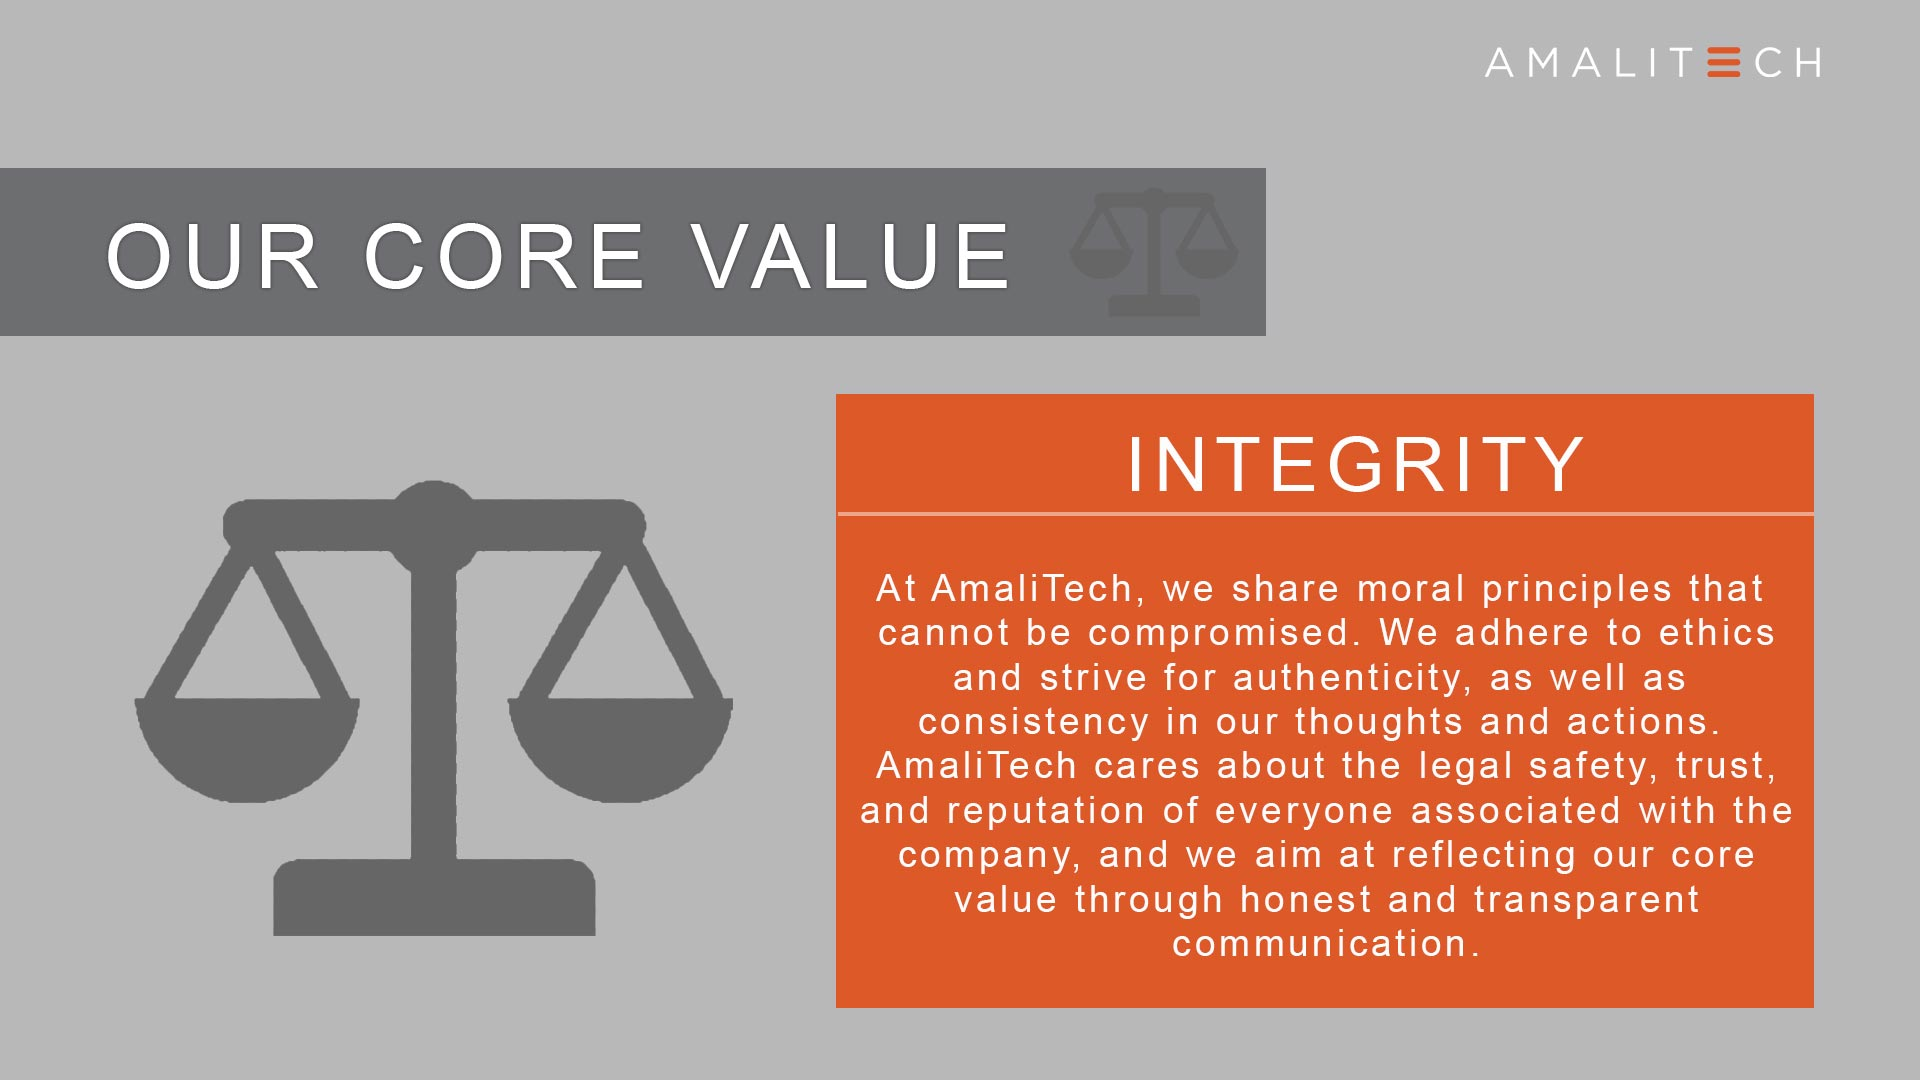 Core Value of Integrity